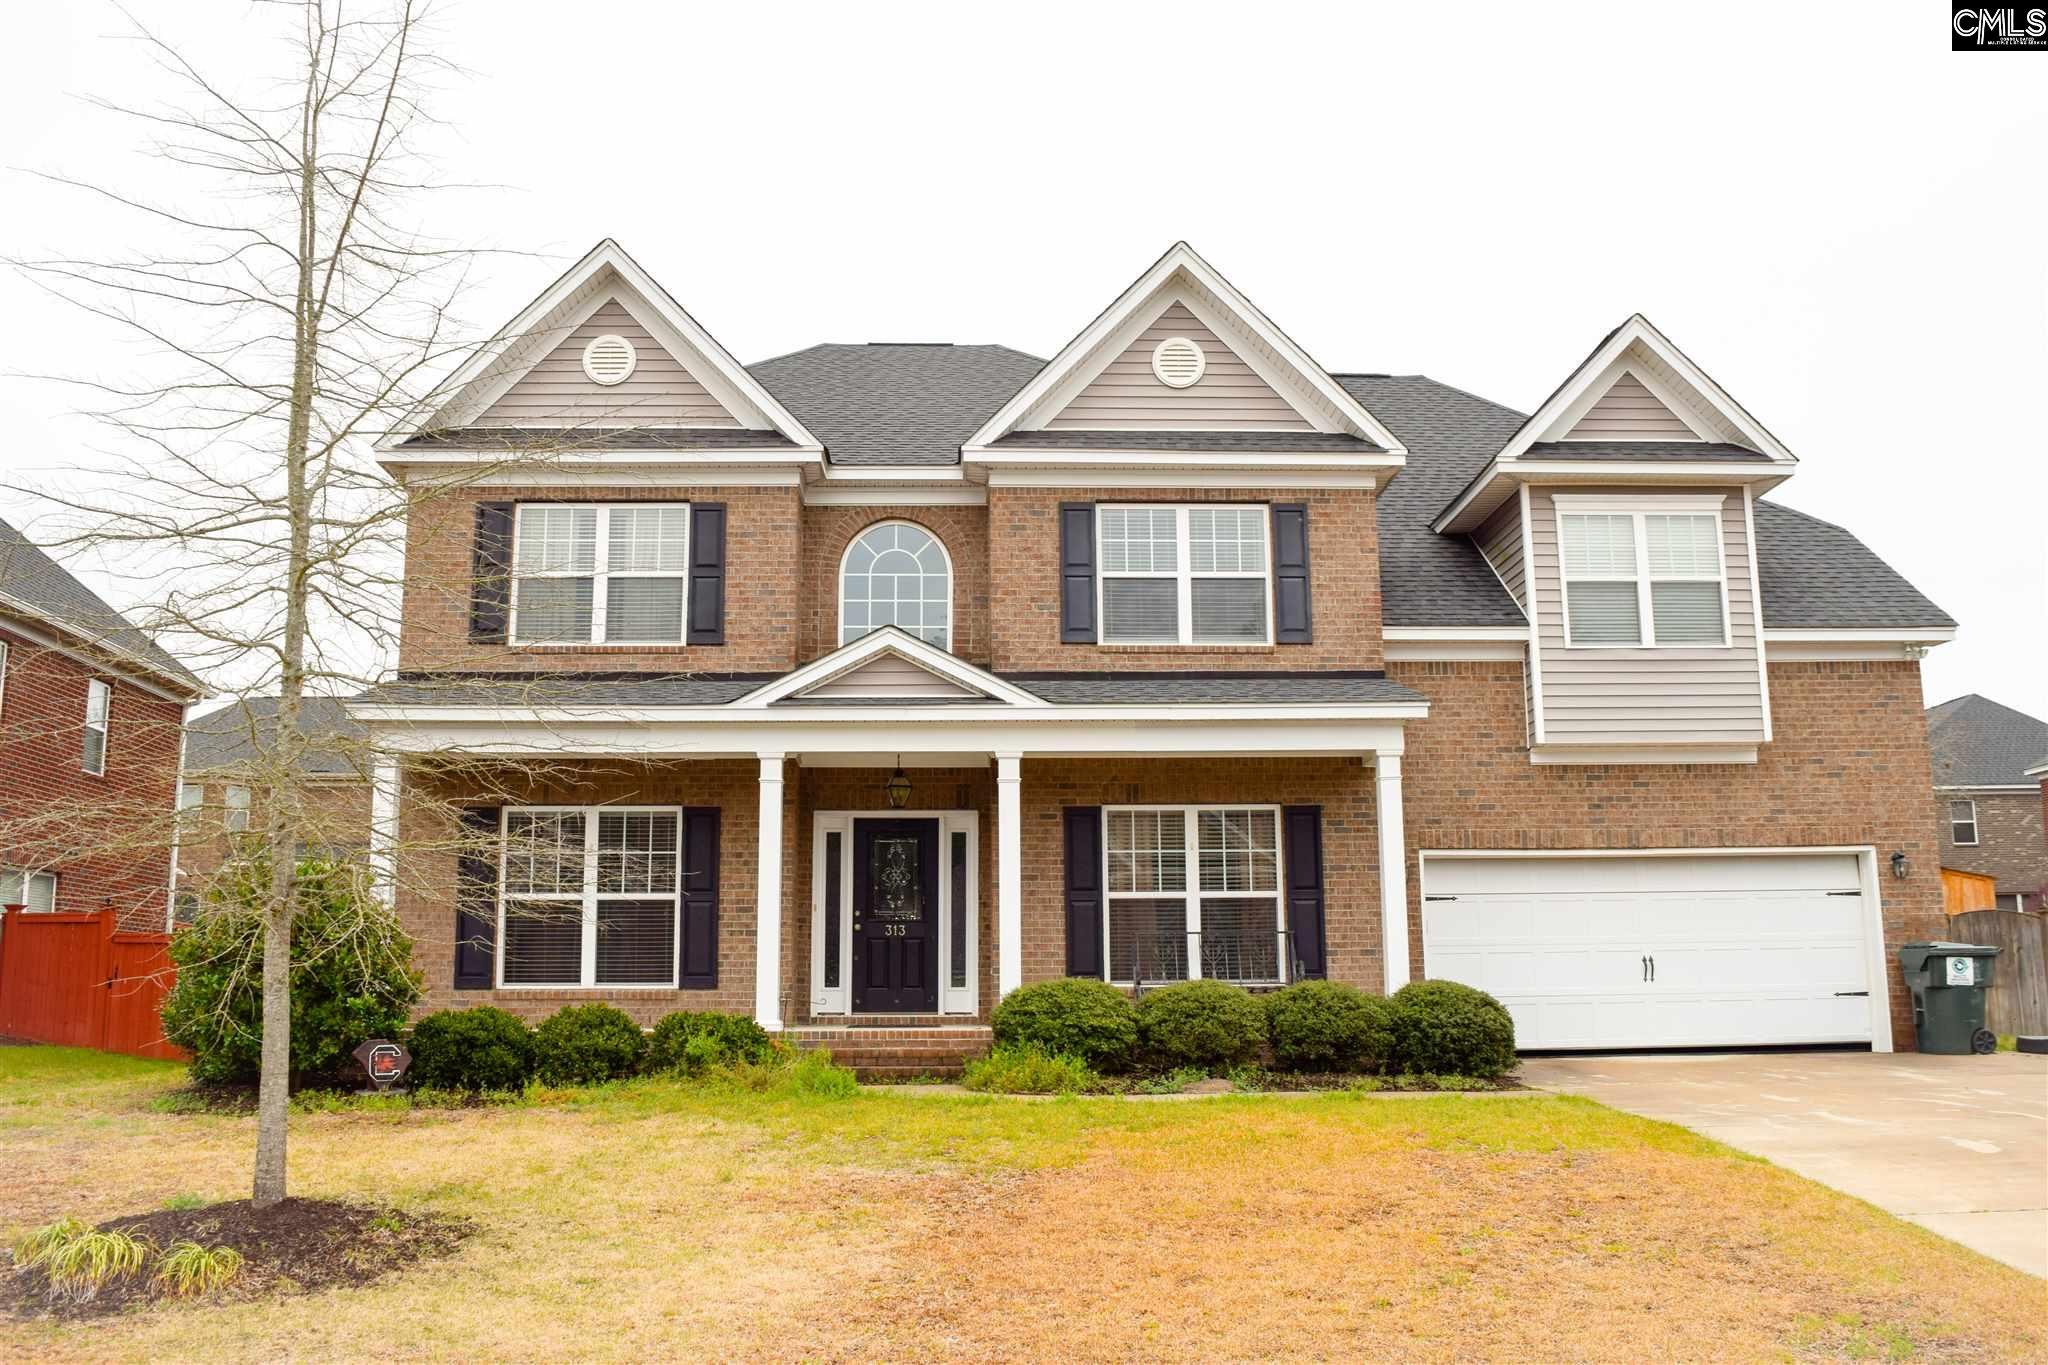 313 Pisgah Flats Lexington, SC 29072